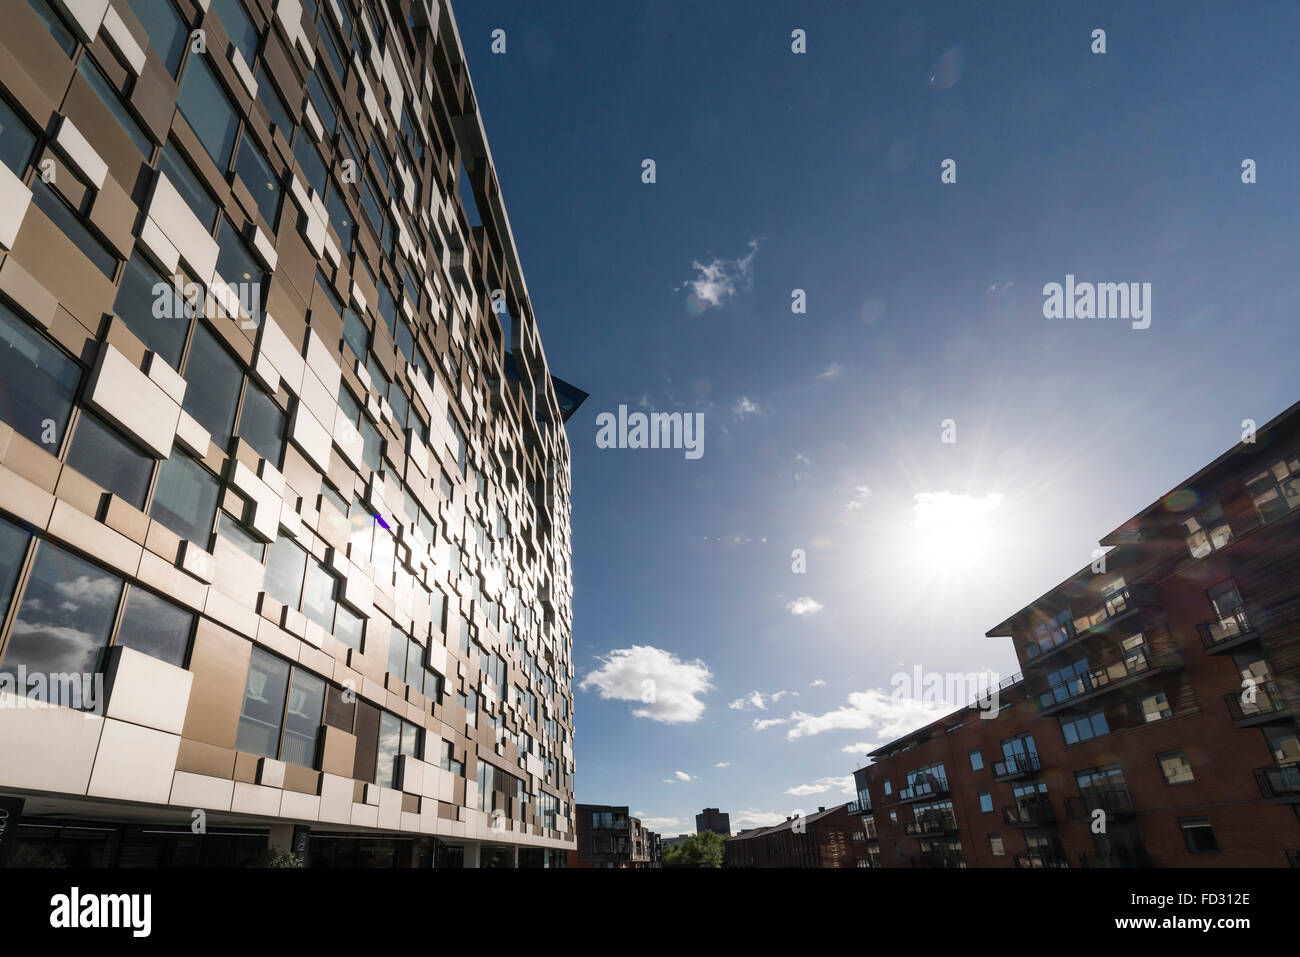 The Cube building, Birmingham, England - Stock Image